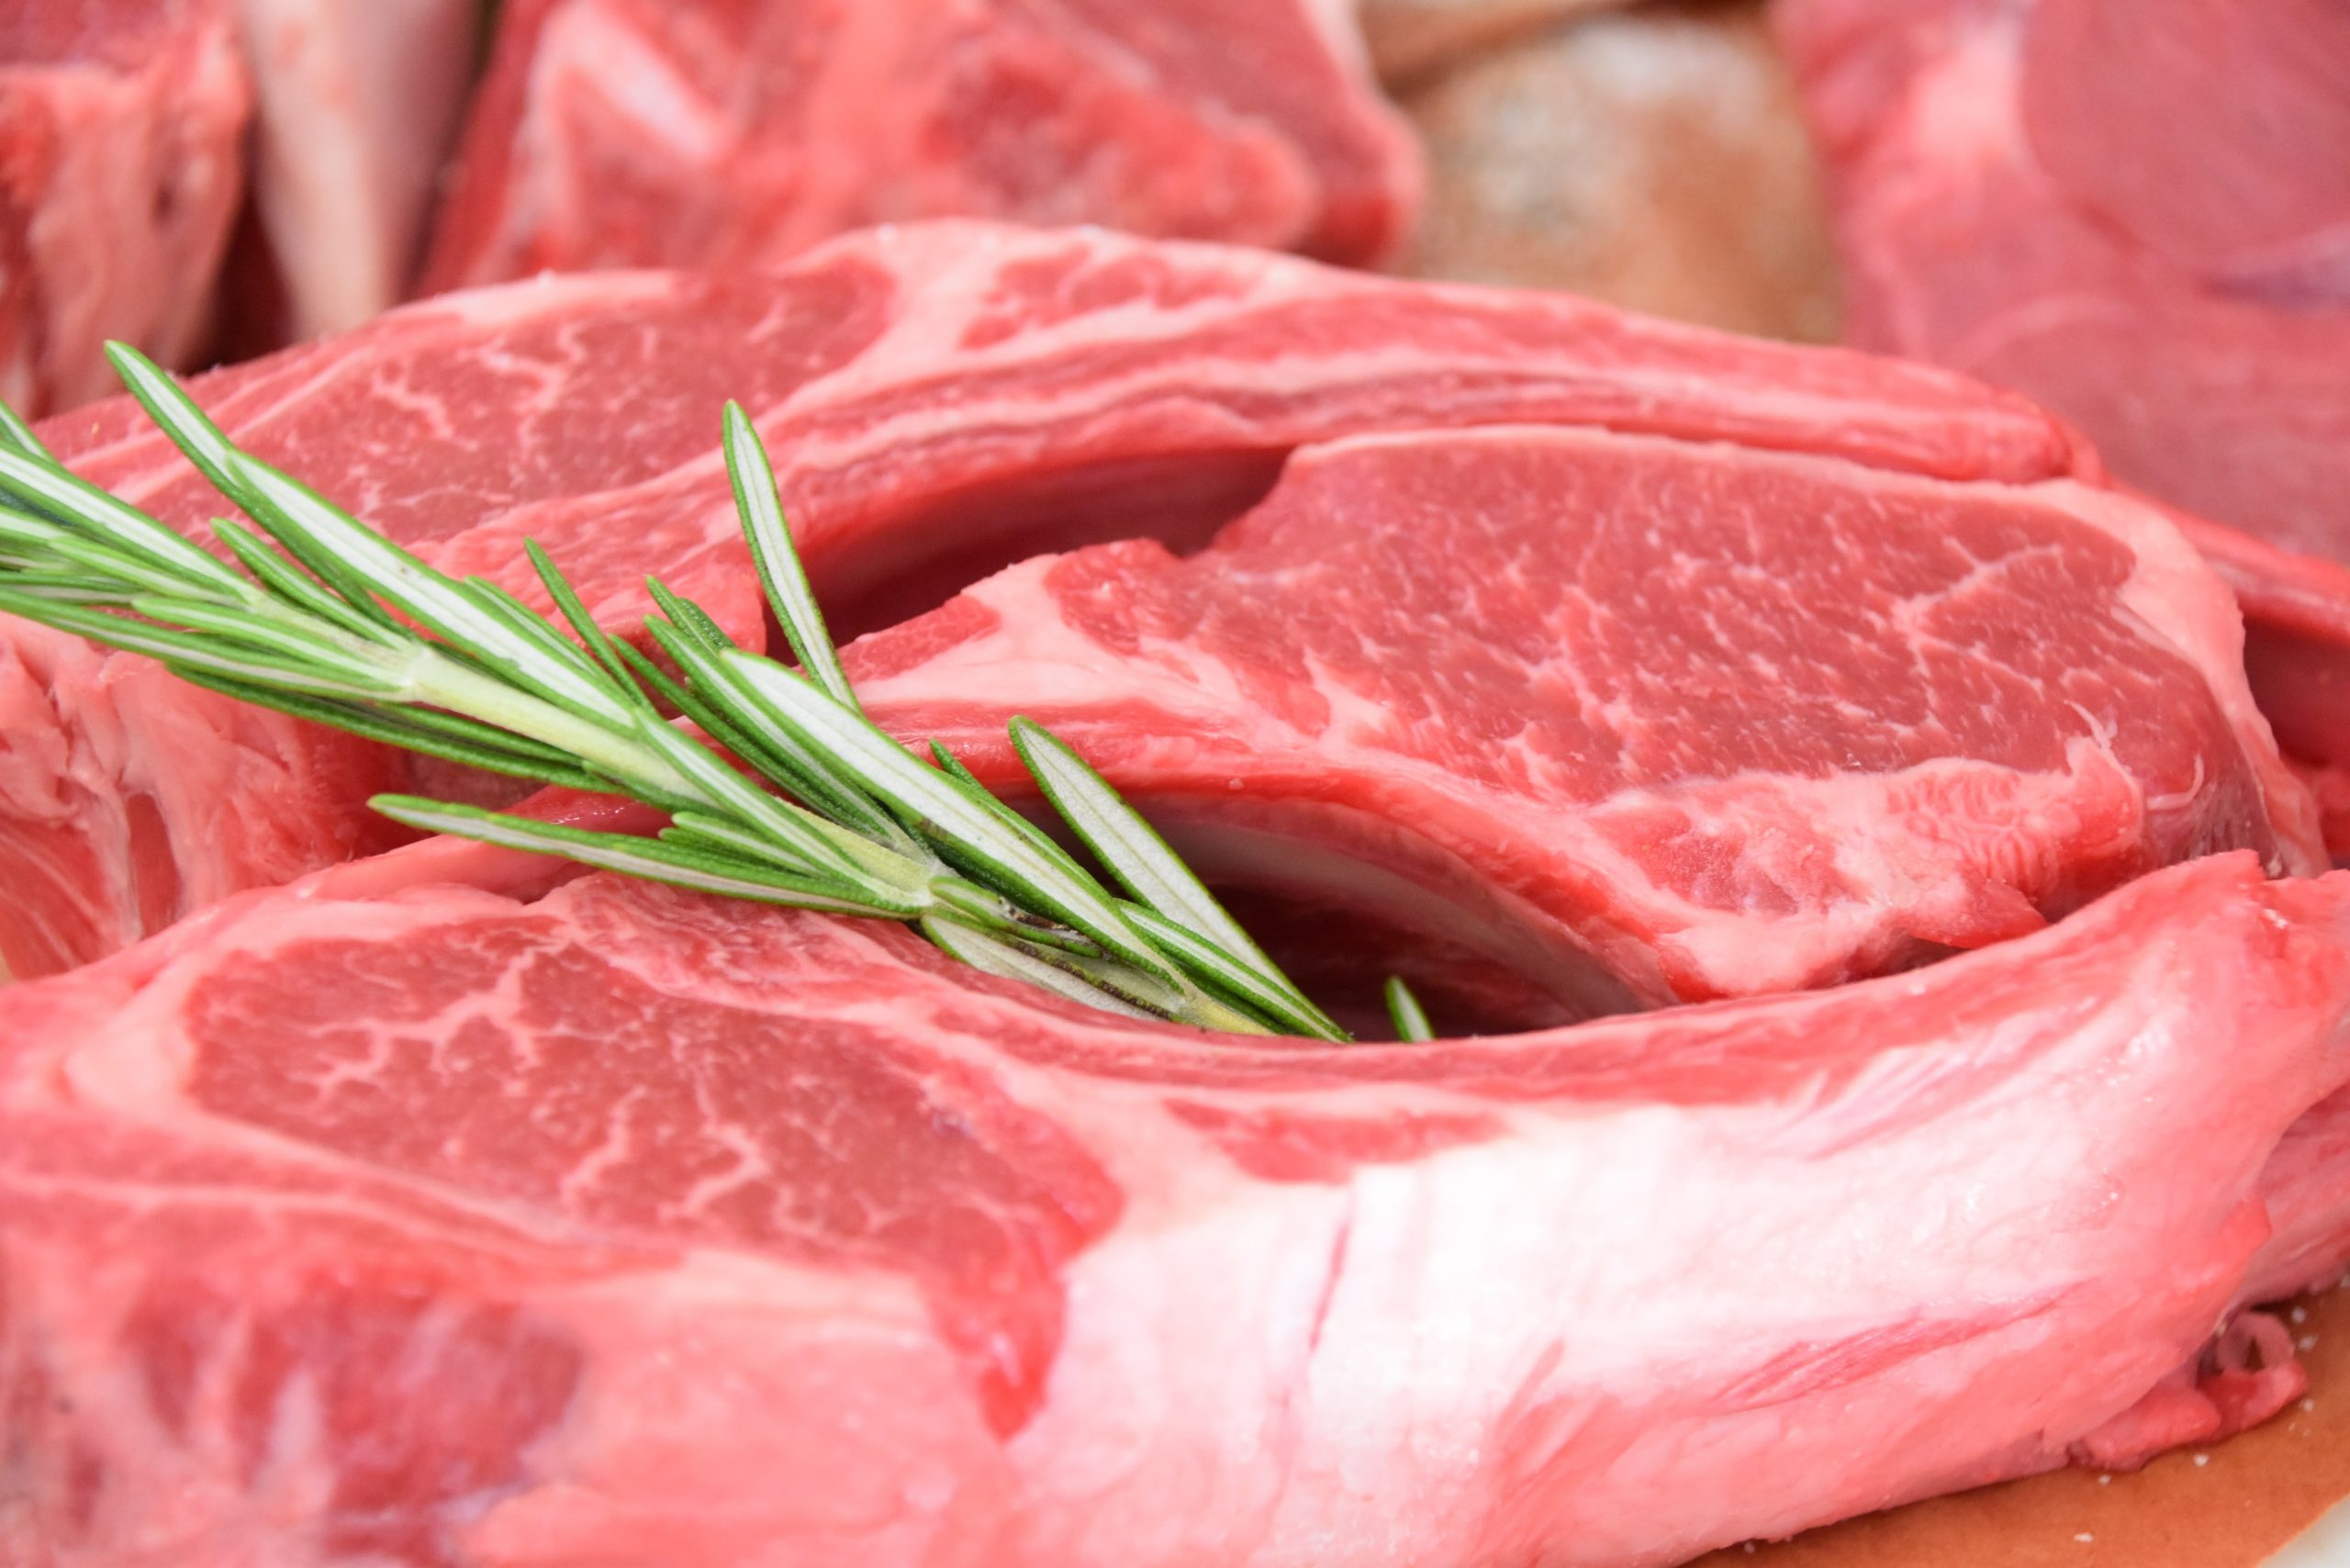 How to Properly Buy Meat from a Butcher